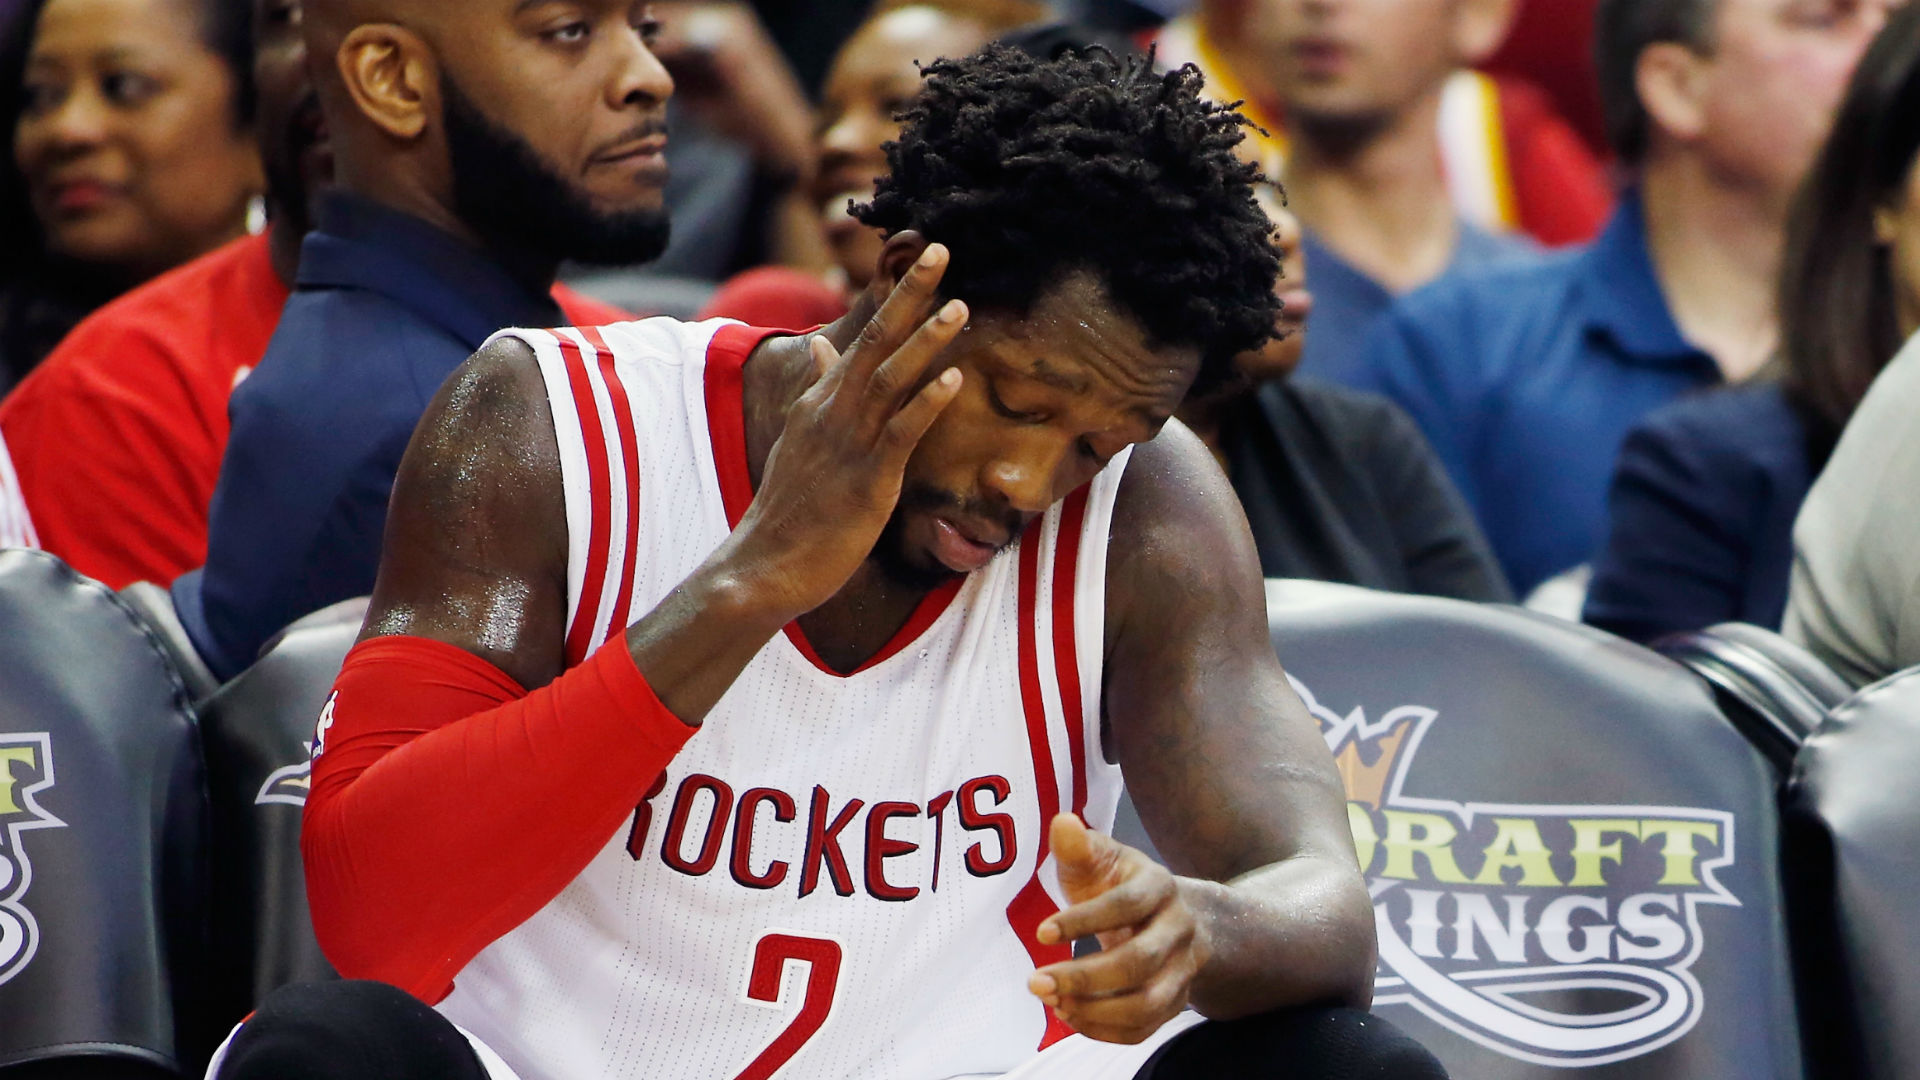 SN source: Rockets' Patrick Beverley draws 'major interest' from Knicks